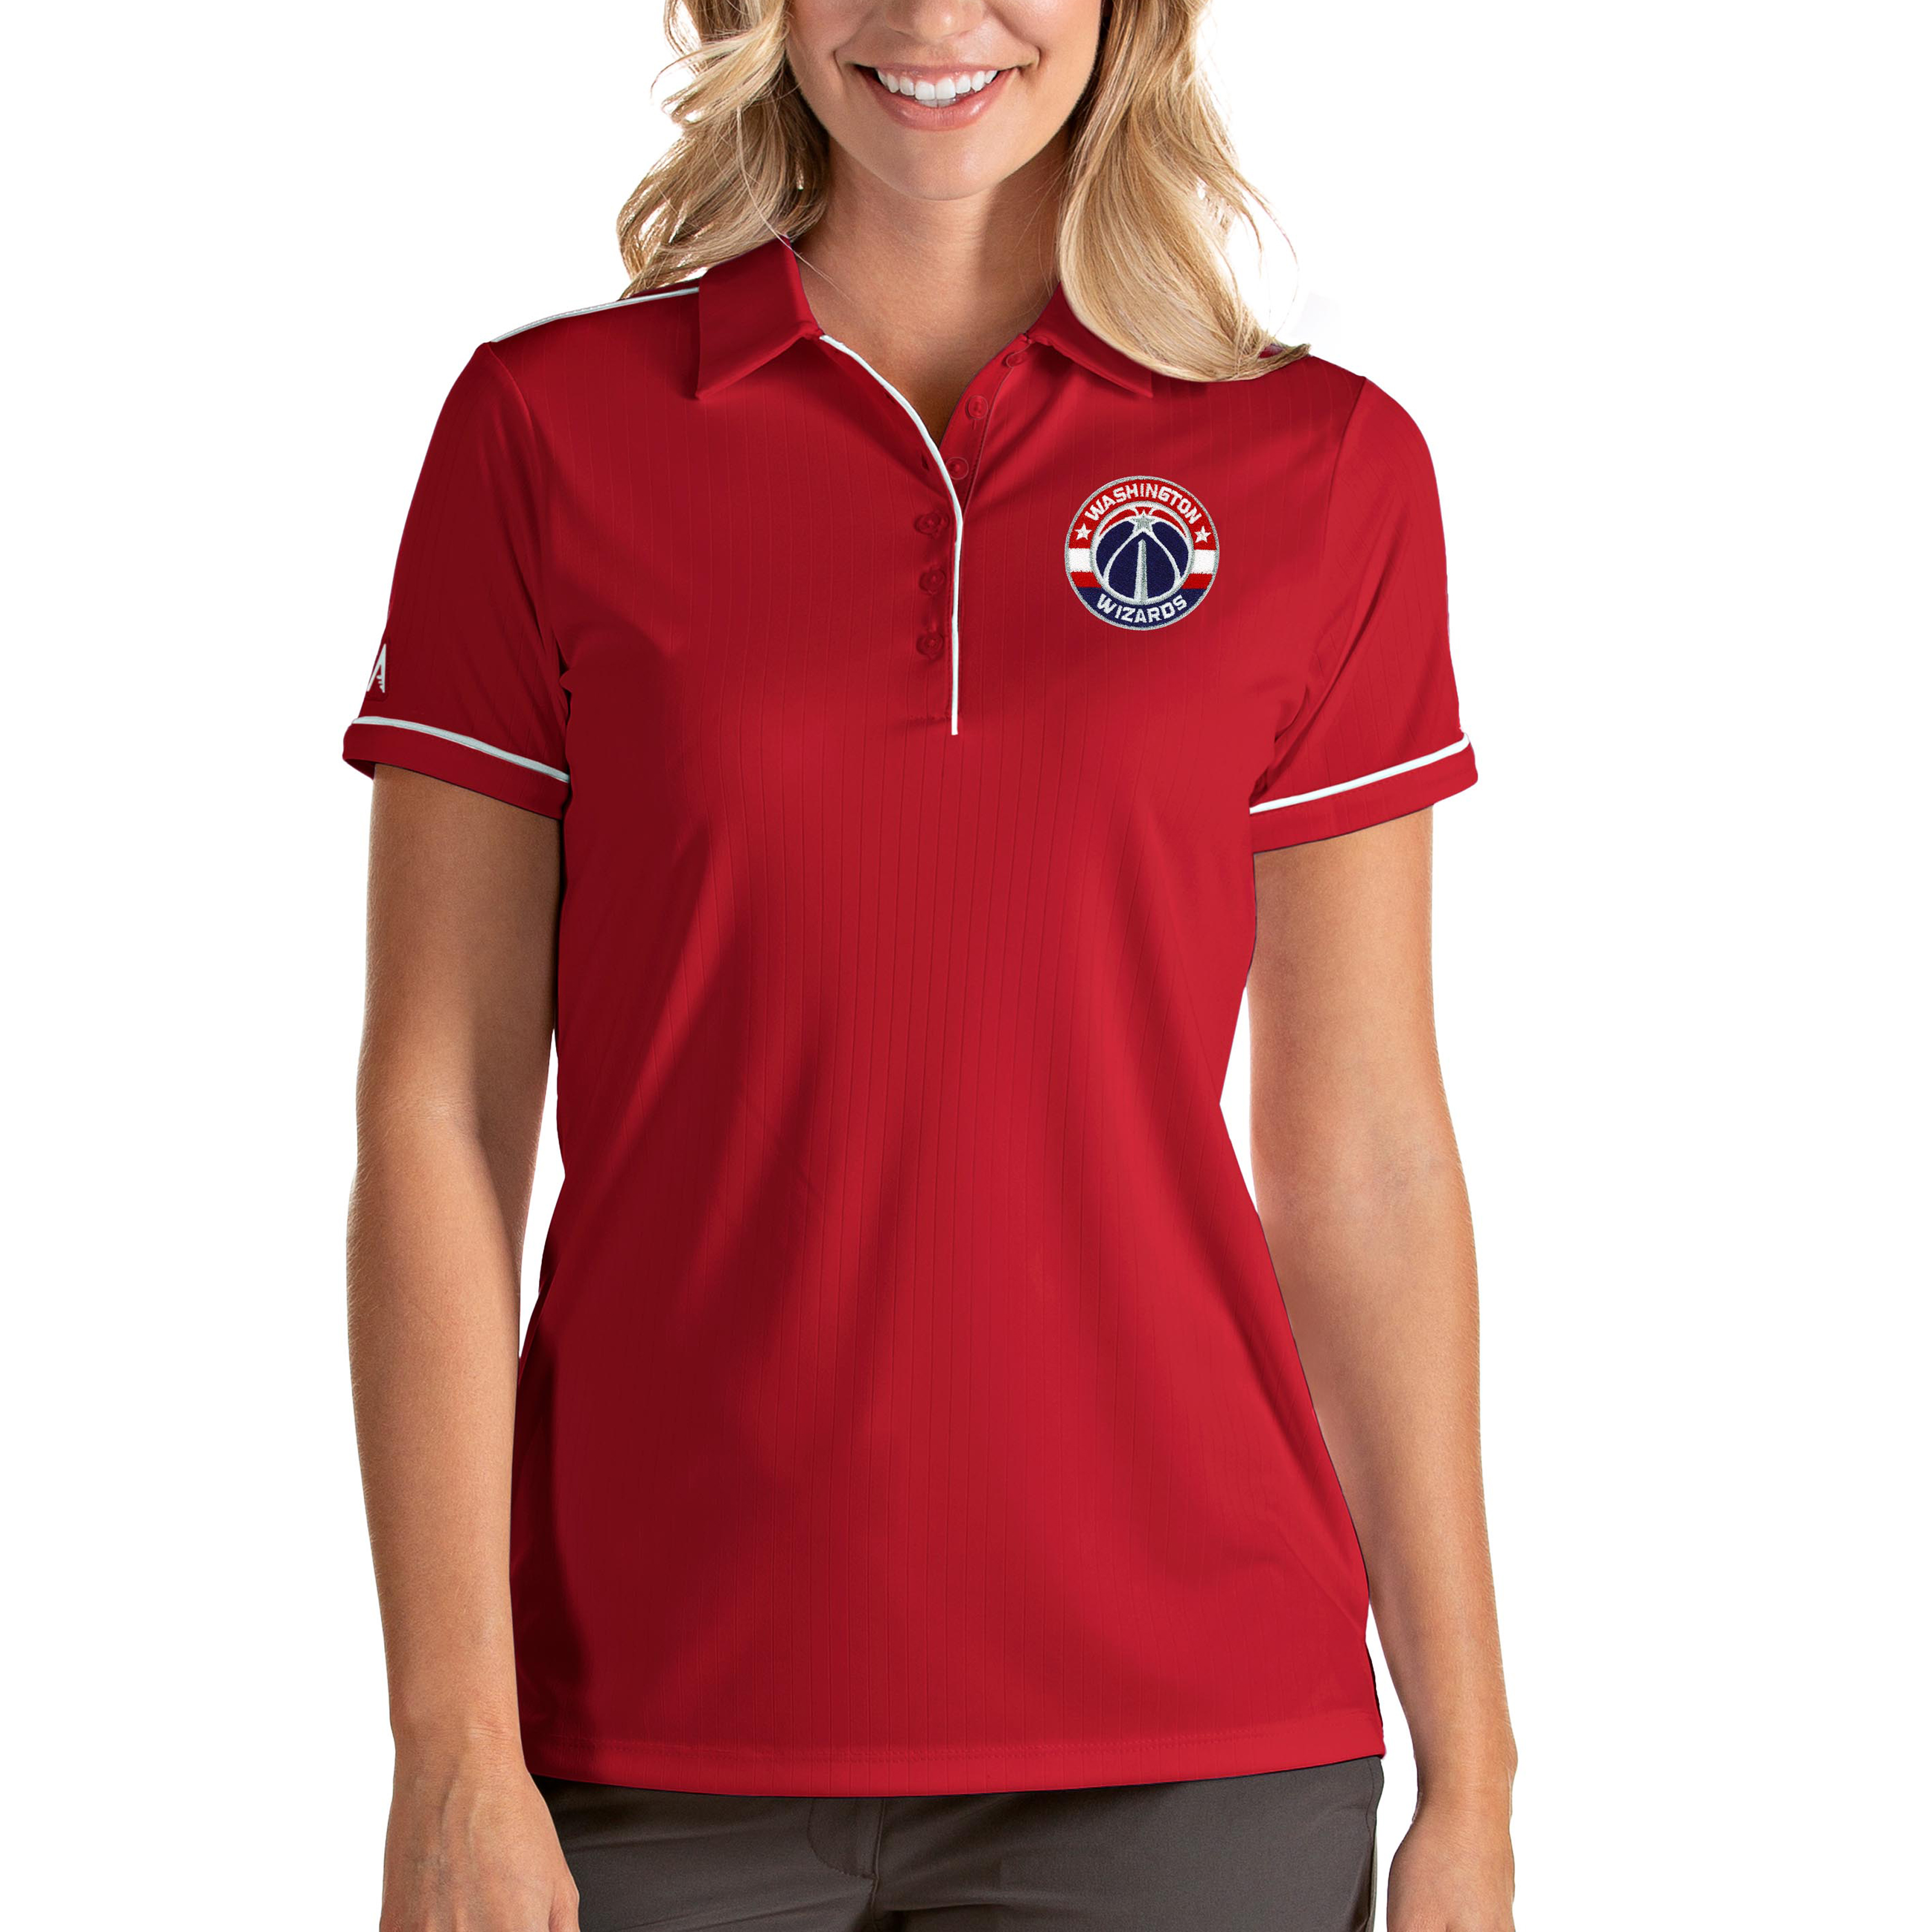 Washington Wizards Antigua Women's Salute Polo - Red/White